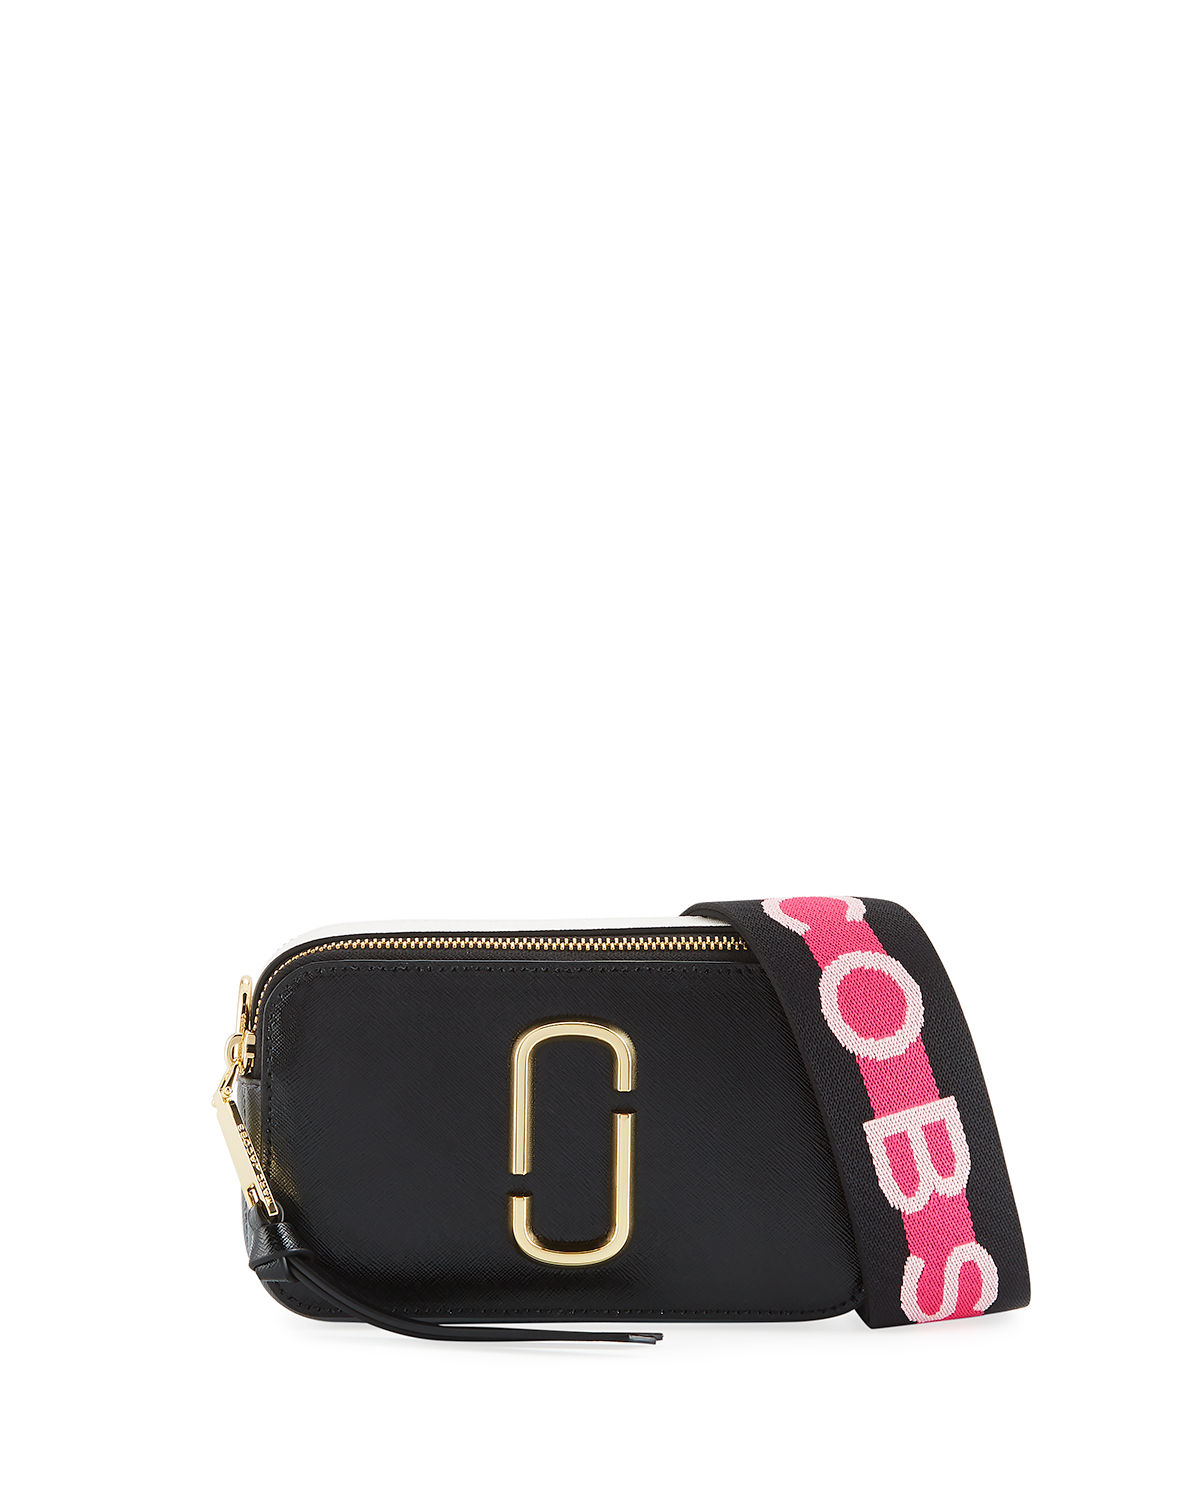 cb2e717a458d Marc Jacobs Snapshot Coated Leather Camera Bag